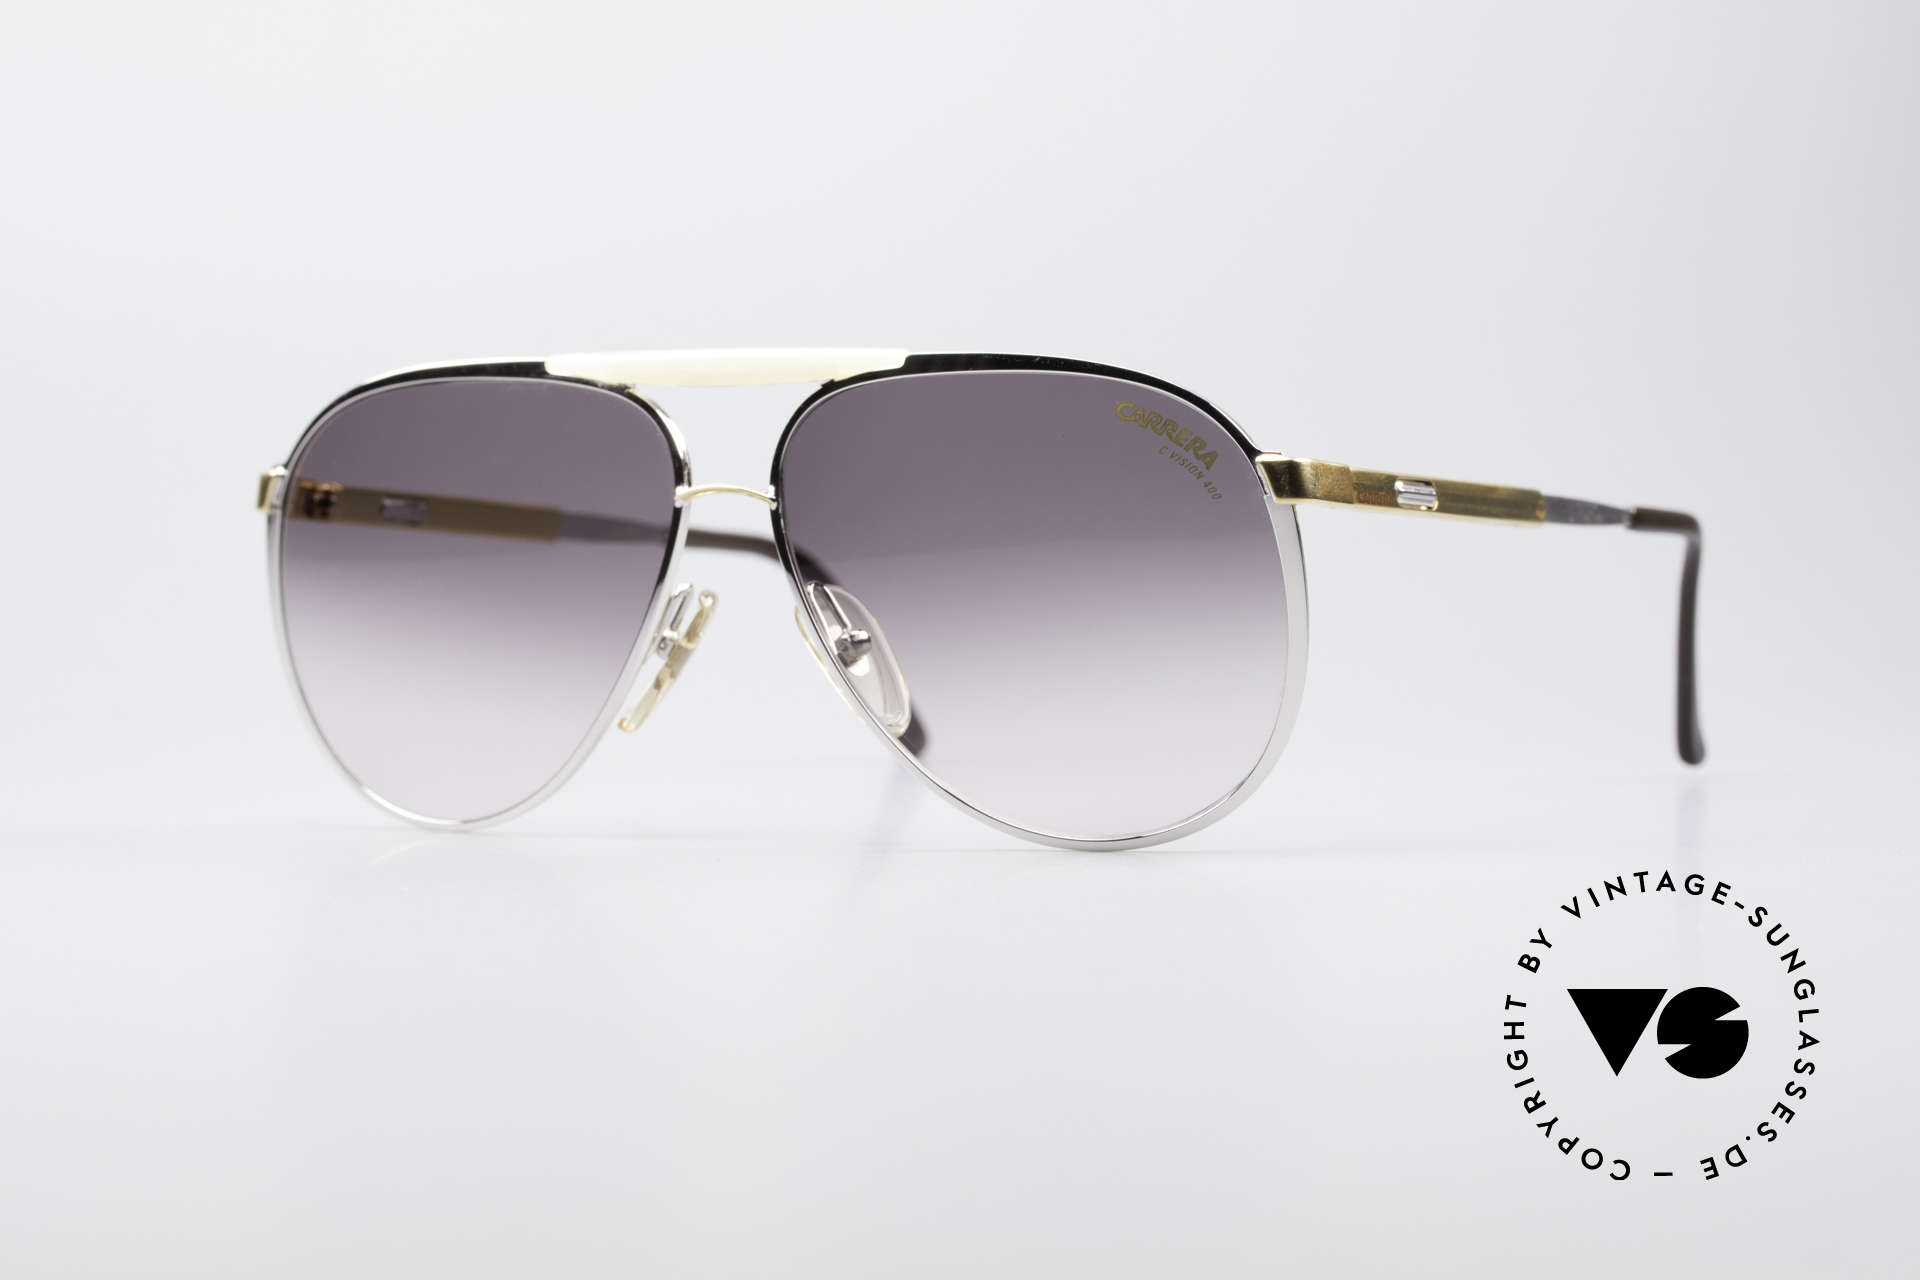 Carrera 5314 - S Adjustable Vario Temples, brilliant 1980's aviator sunglasses by CARRERA, Made for Men and Women